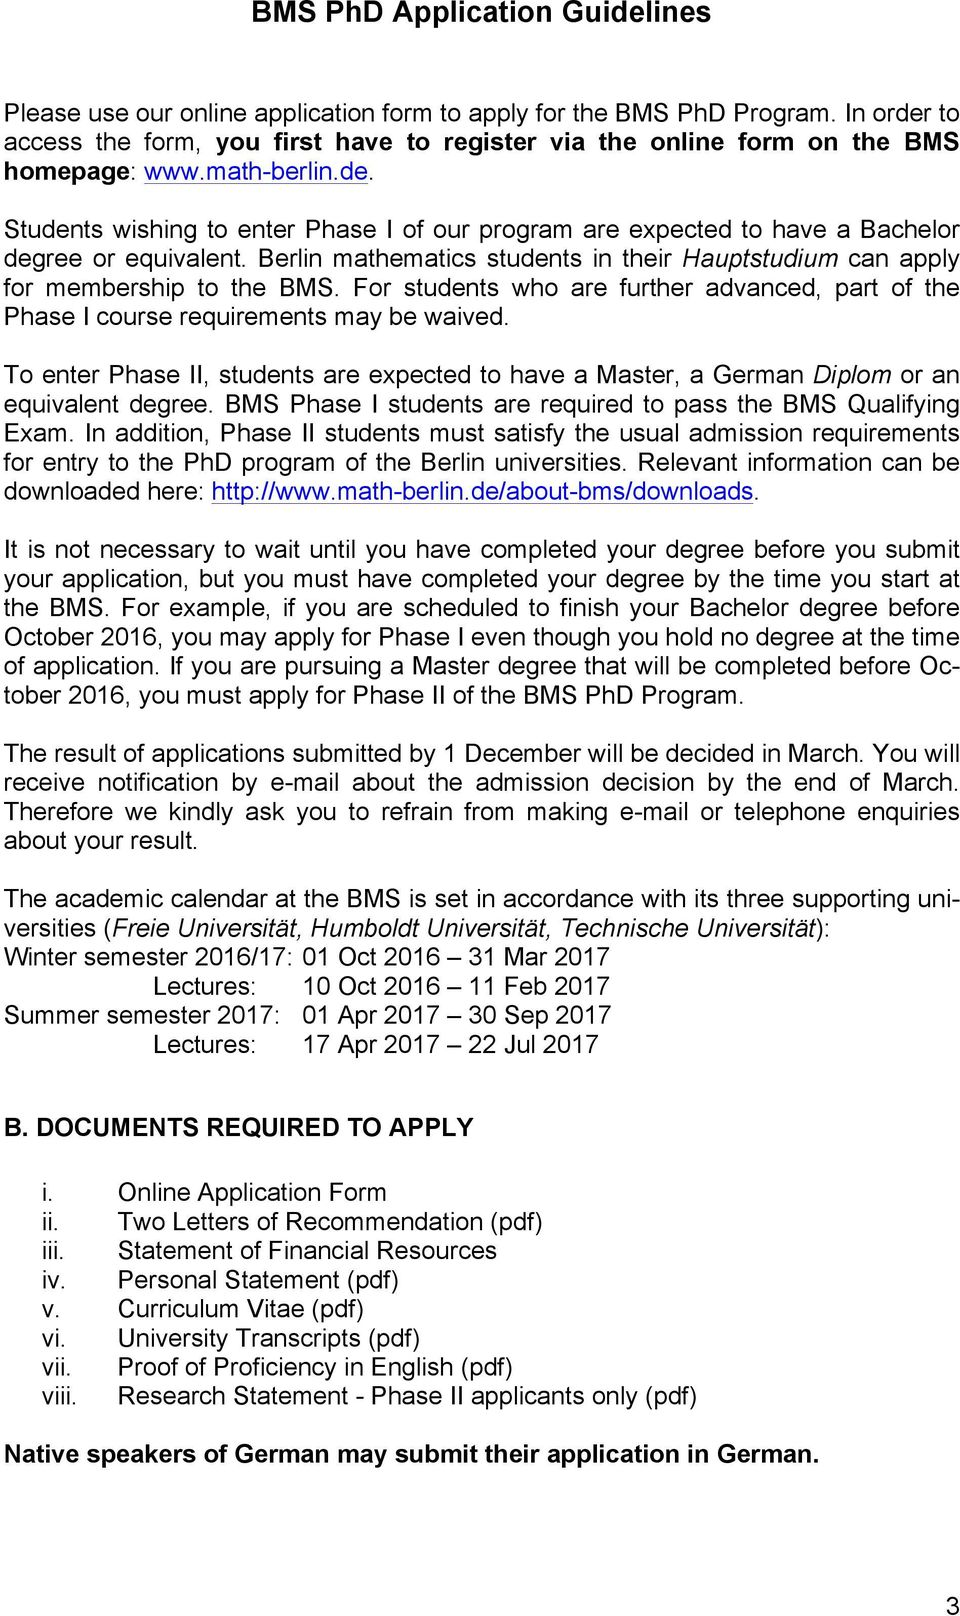 BMS PhD Application Guidelines - PDF